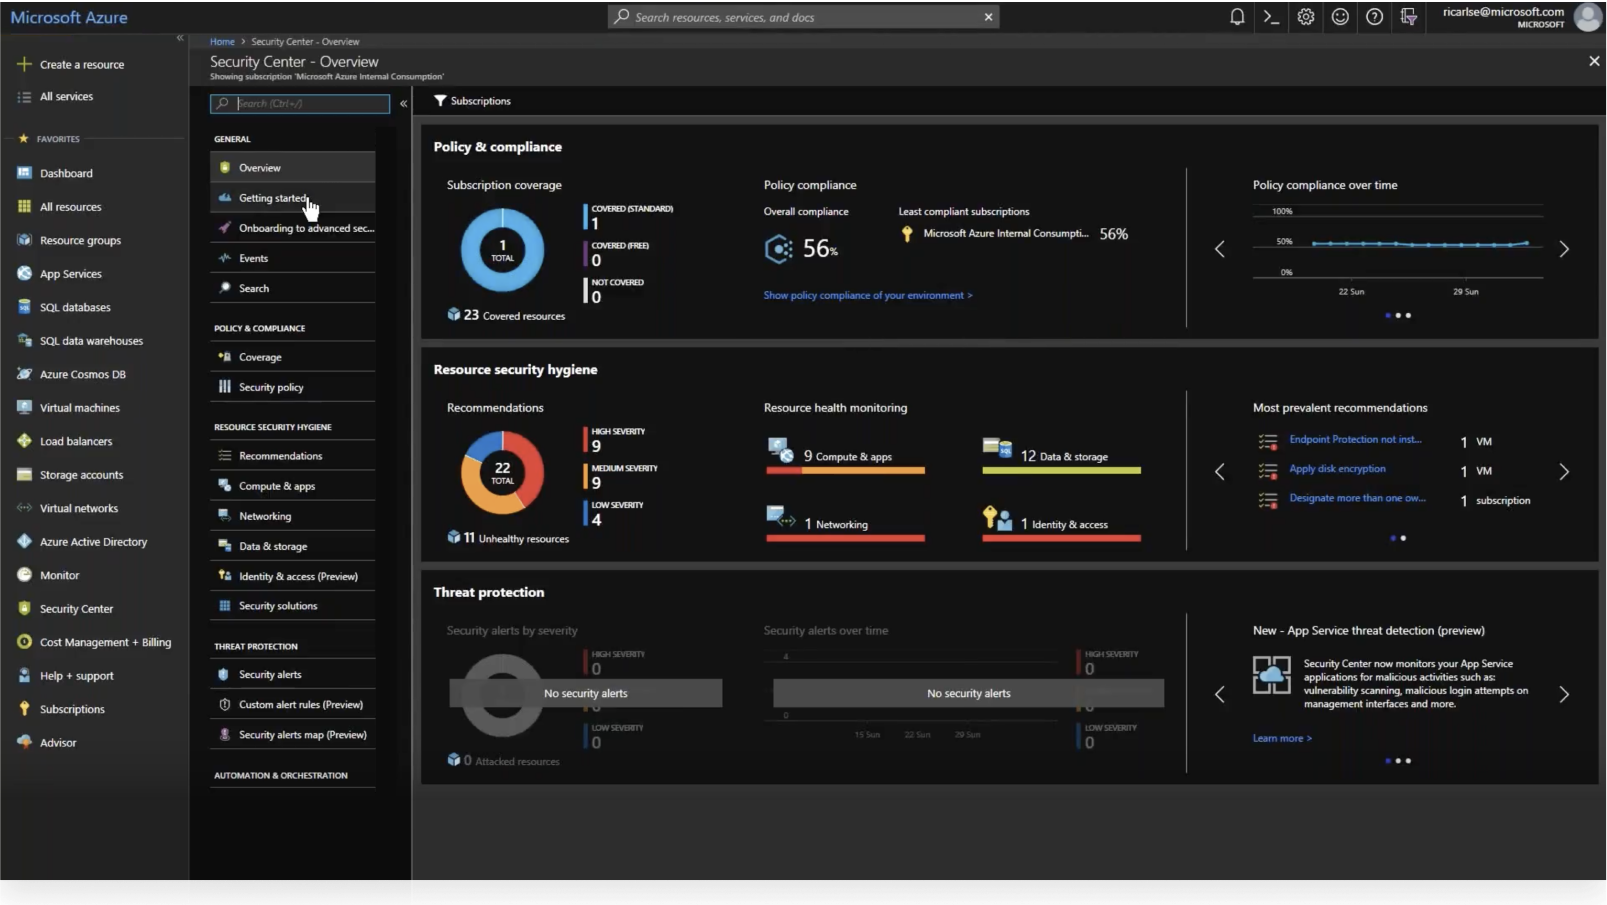 Azure Active Directory security center